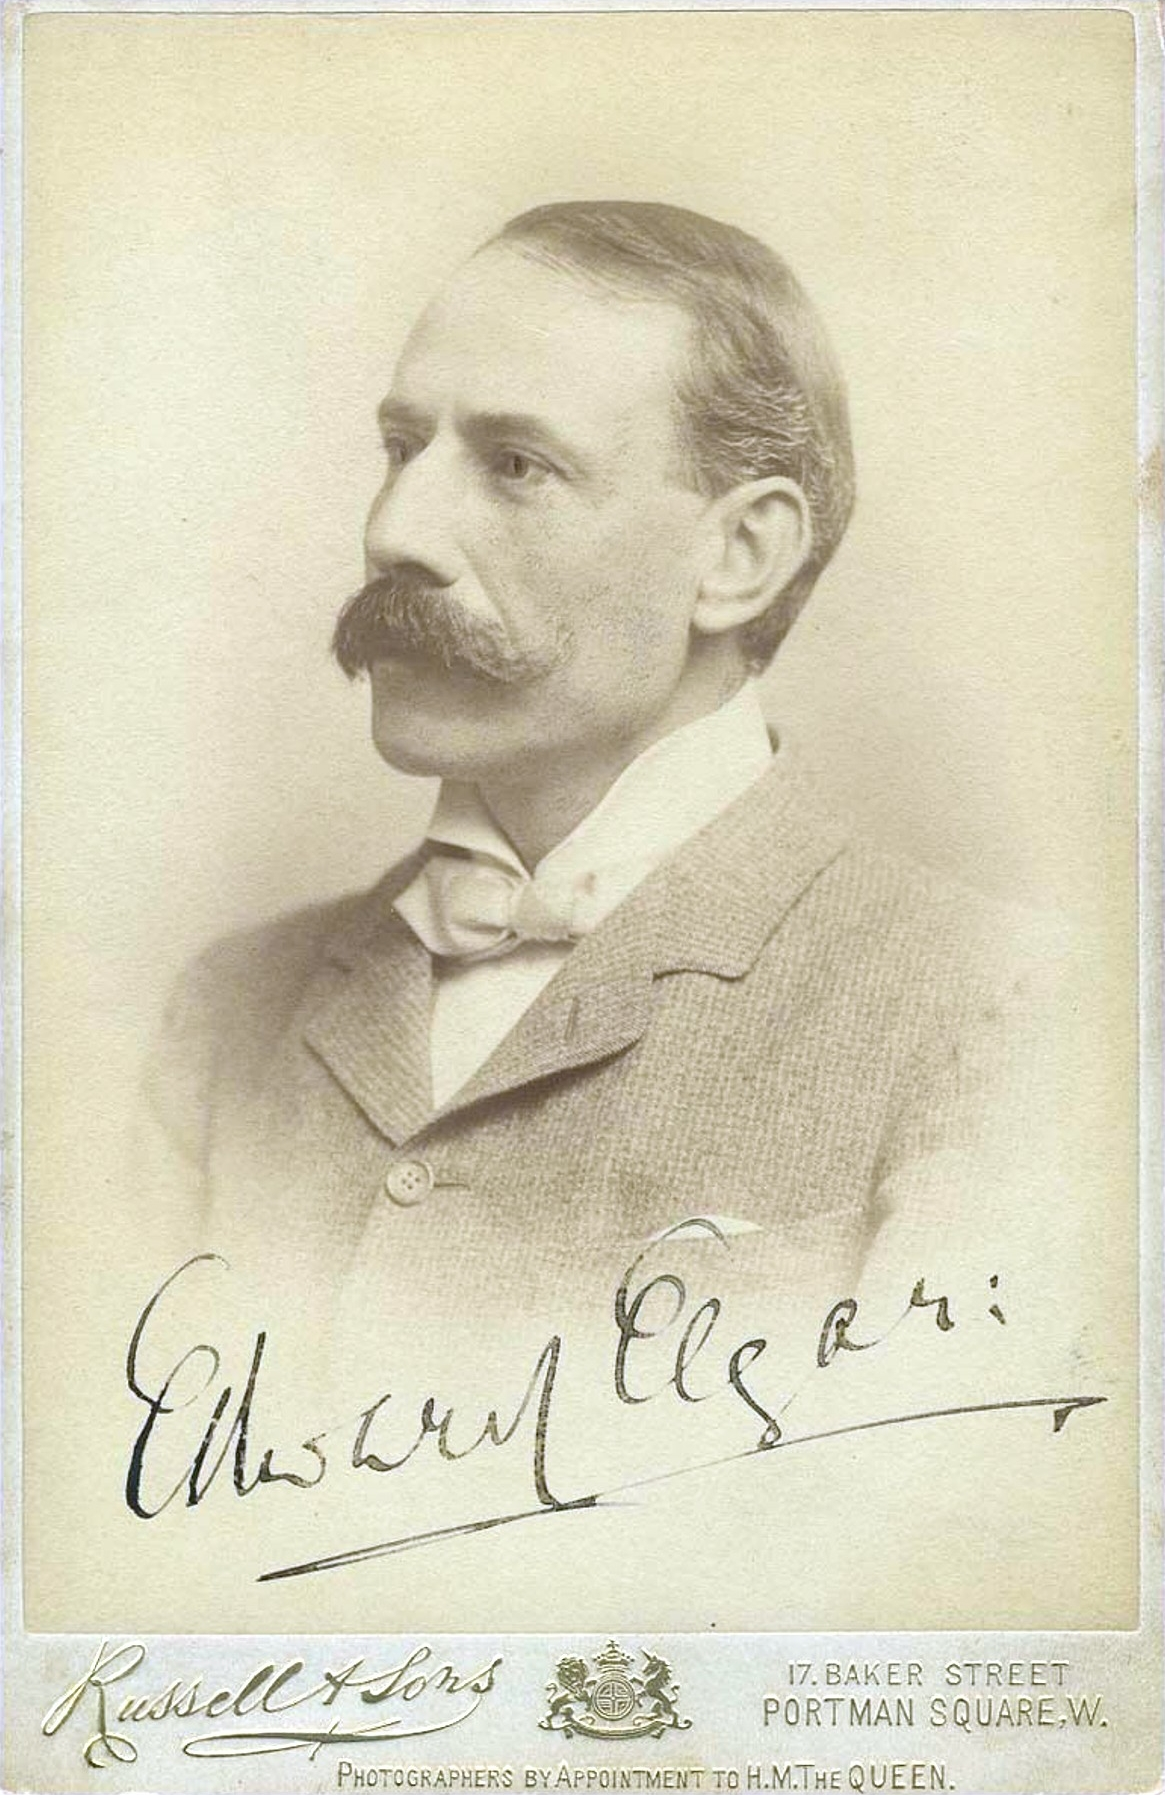 Edward ELGAR en 1904, source: IMSLP